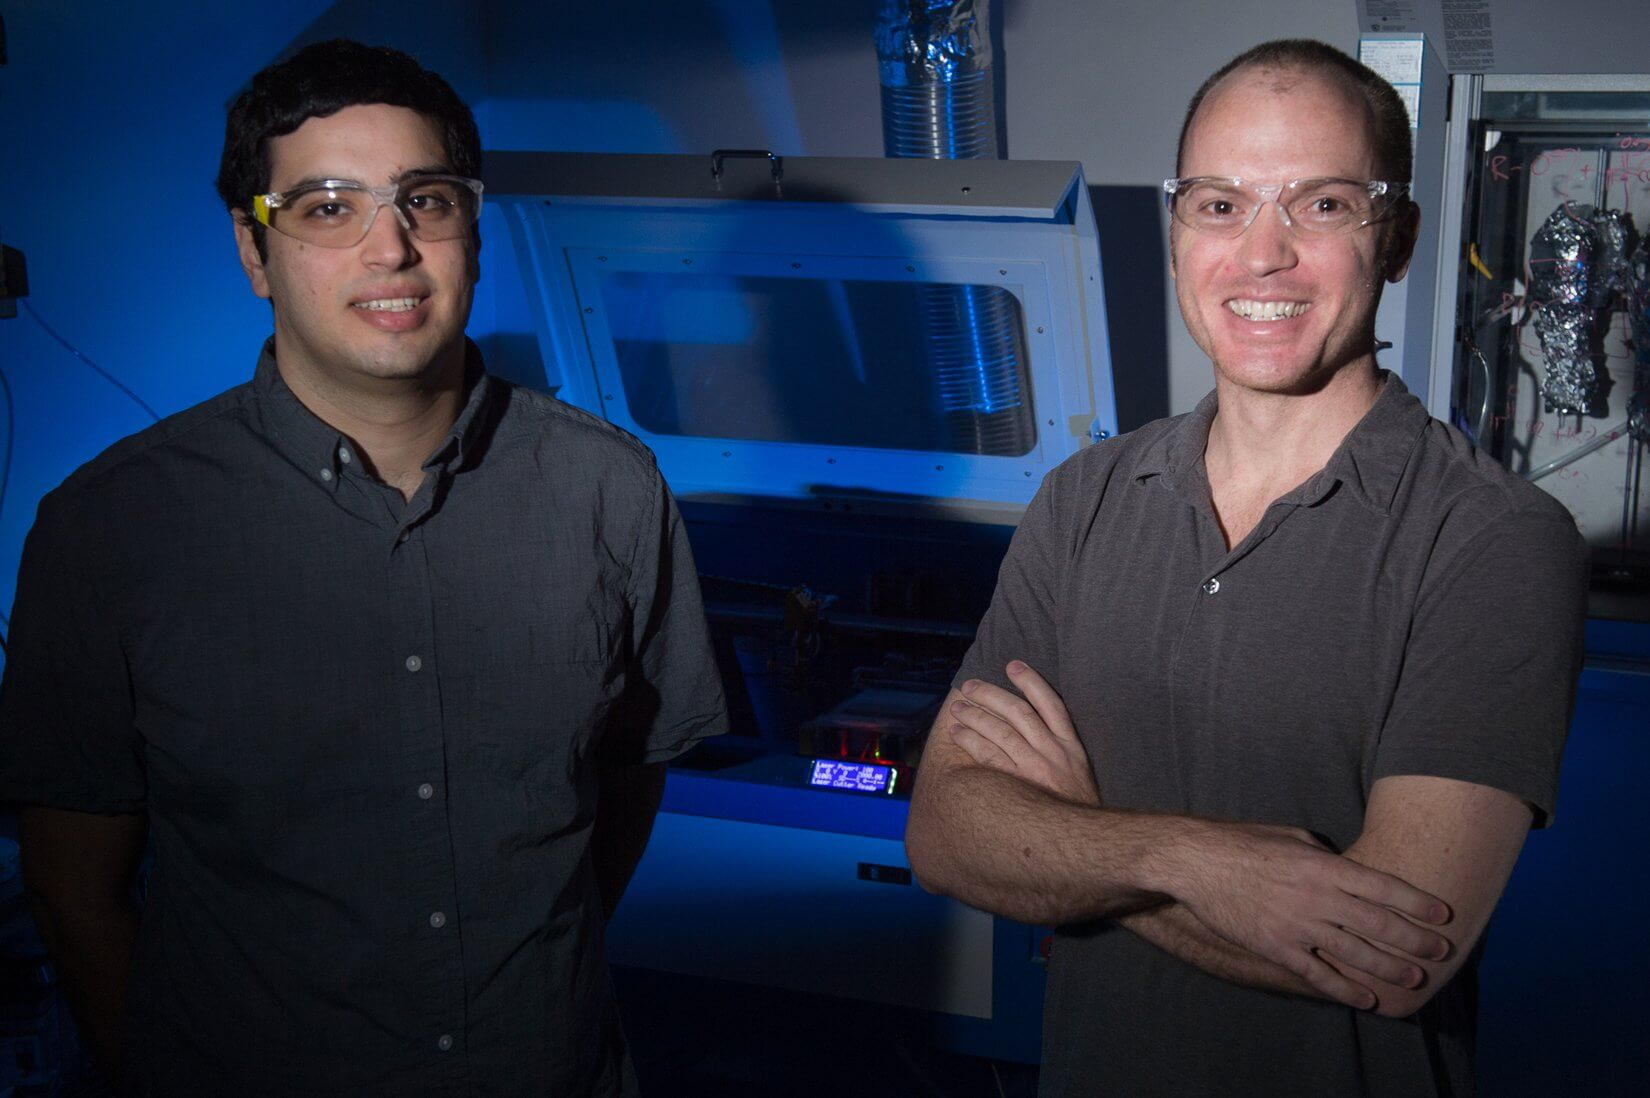 Ian Kinstlinger (left) and Jordan Miller with the OpenSLS printer. Design specs and performance for OpenSLS are available at https://github.com/MillerLabFTW/. (Photo by Jeff Fitlow/Rice University)